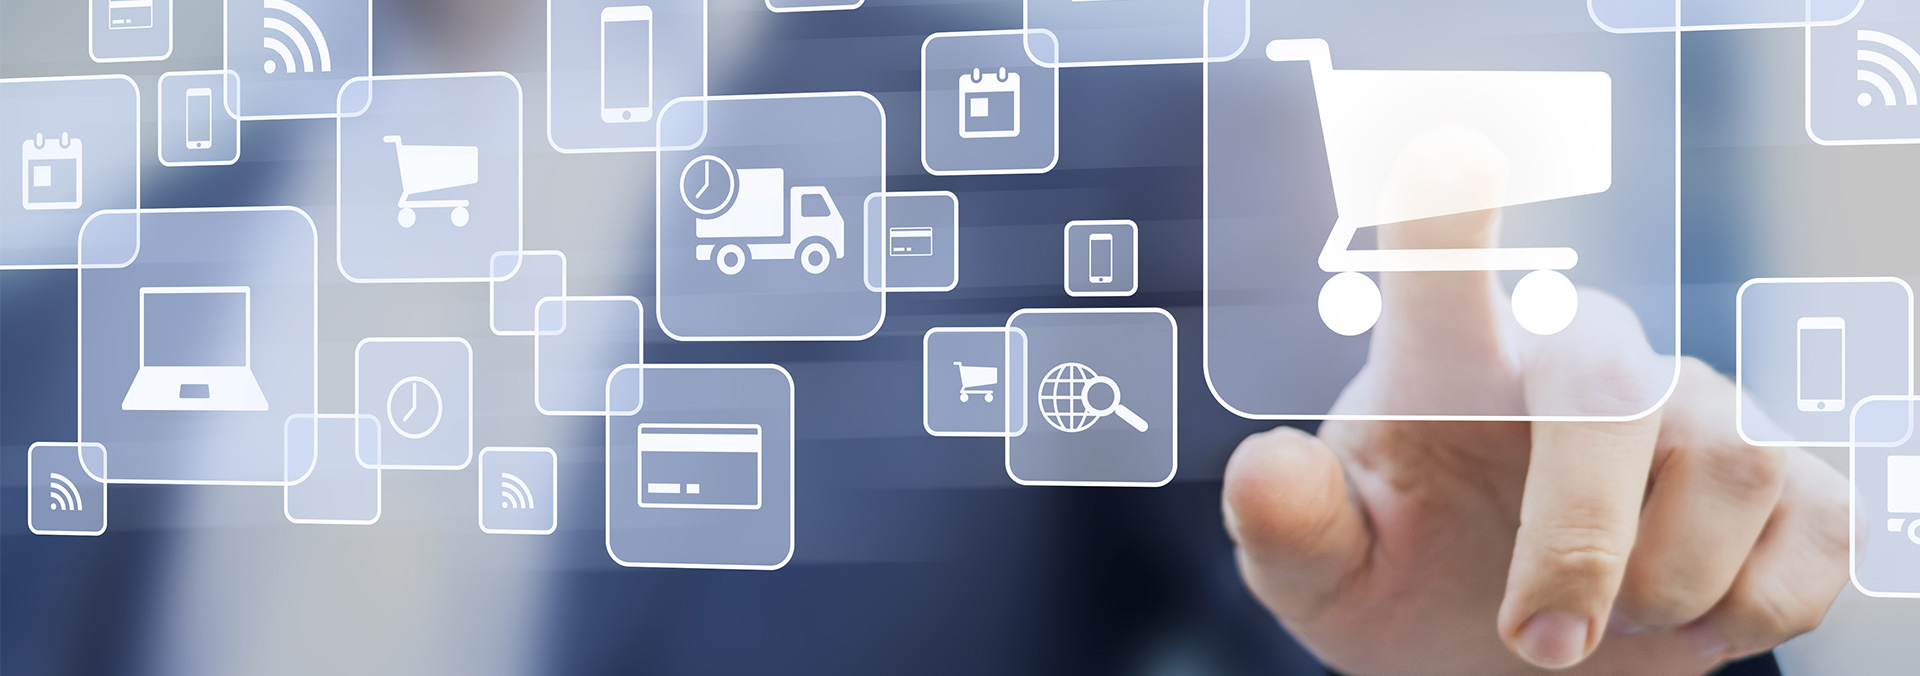 ELECTRONIC COMMERCE AND MANAGEMENT